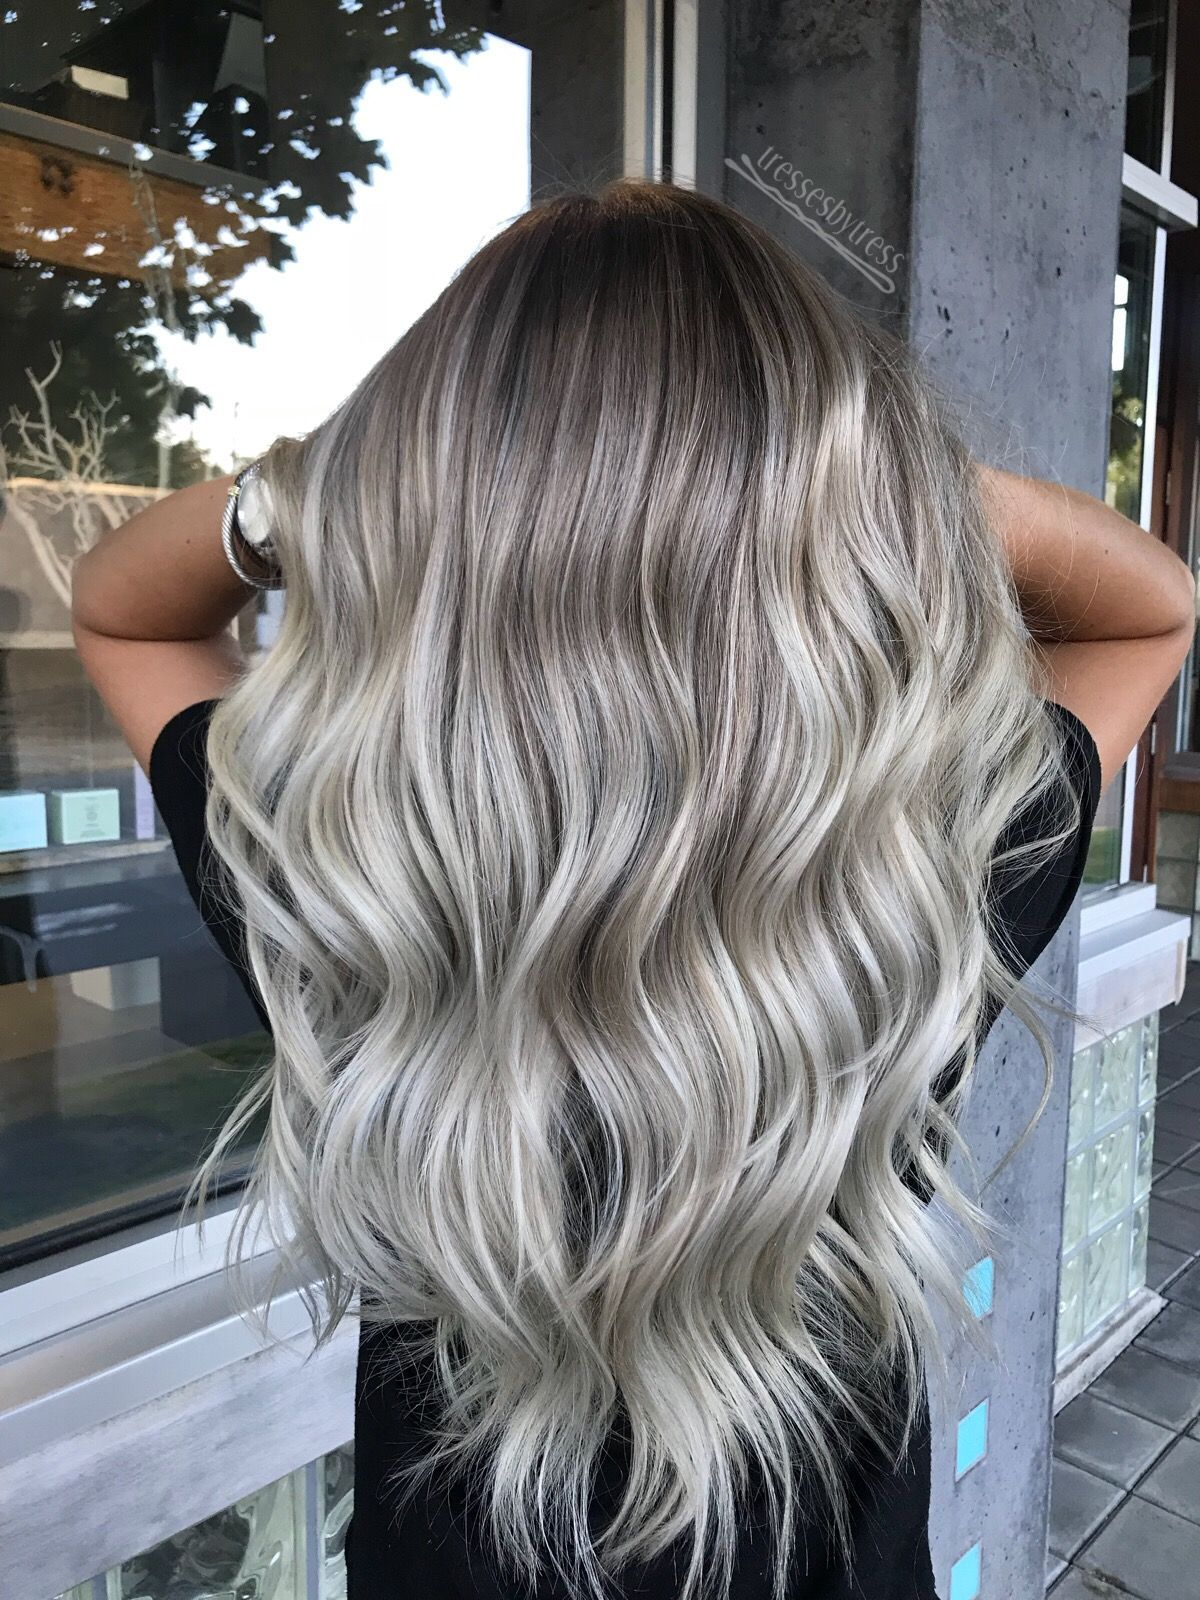 50++ Platinum blonde hair with silver highlights ideas in 2021